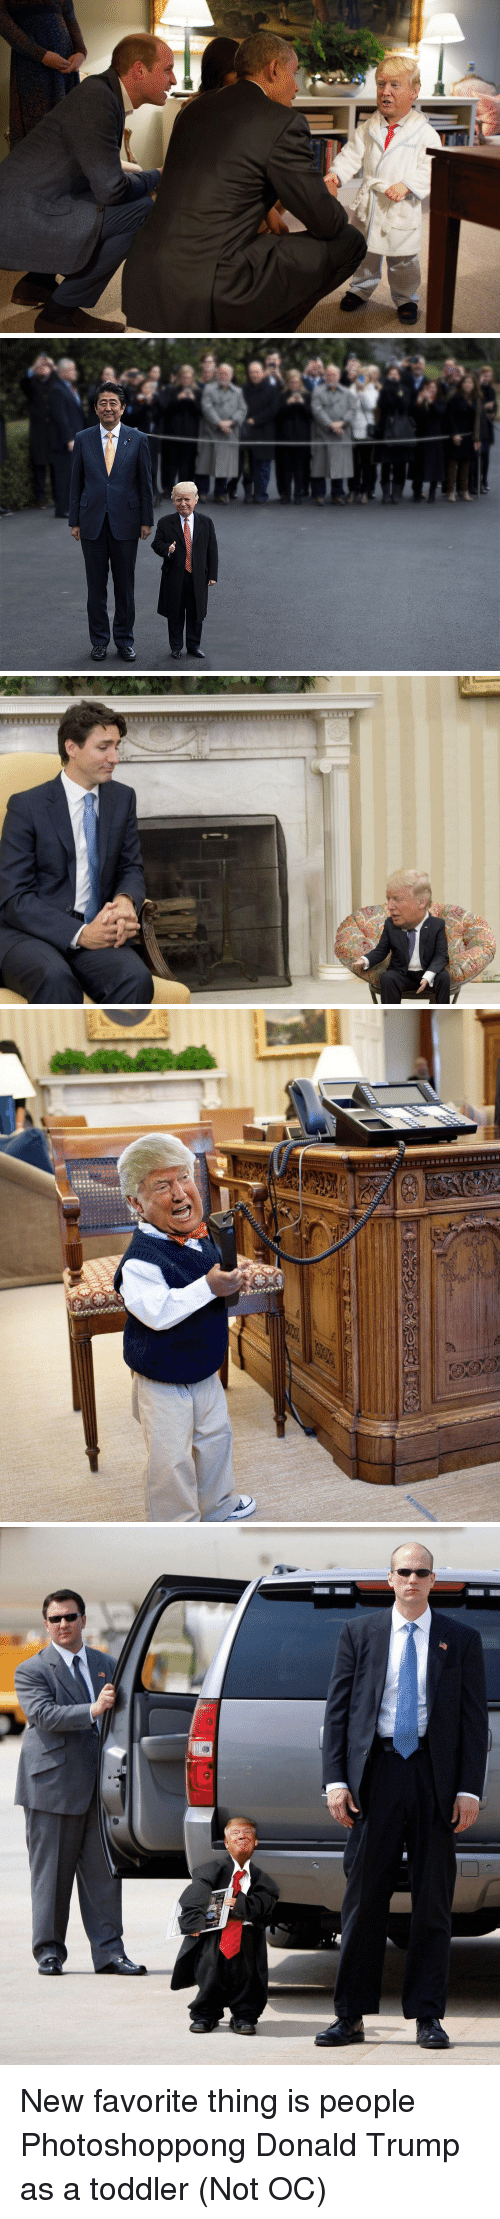 Donald Trump, Thing, and New: 品 New favorite thing is people Photoshoppong Donald Trump as a toddler (Not OC)